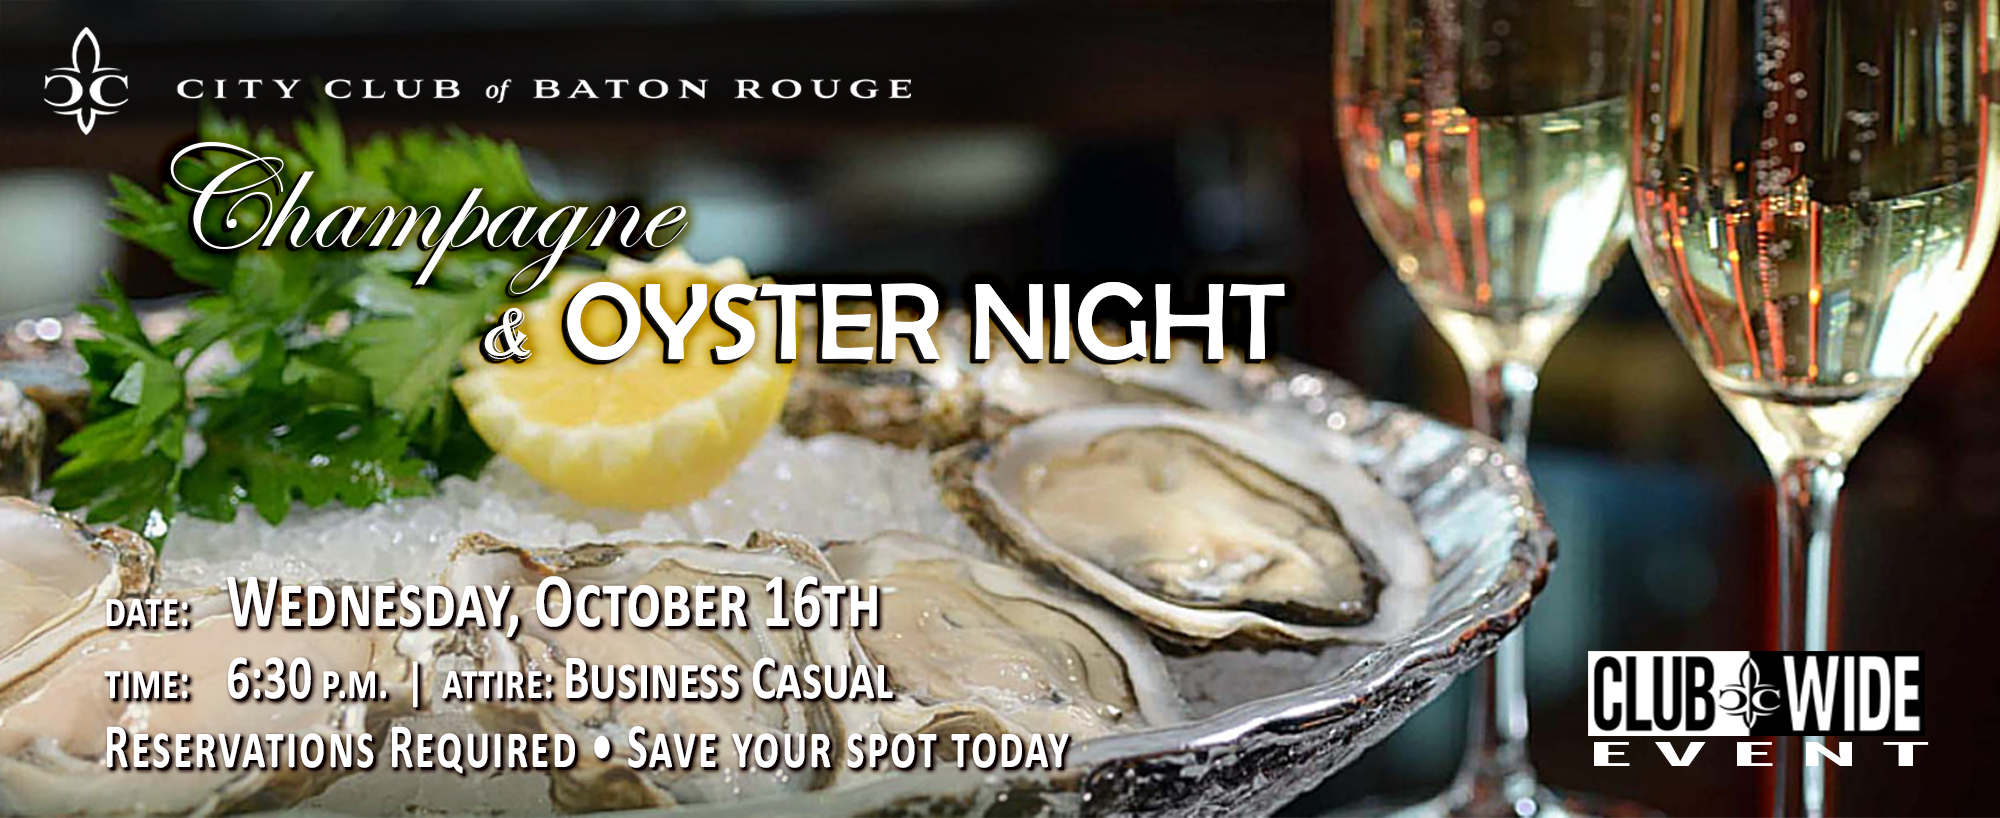 marque_2019 Champagne + Oysters-2019.jpg